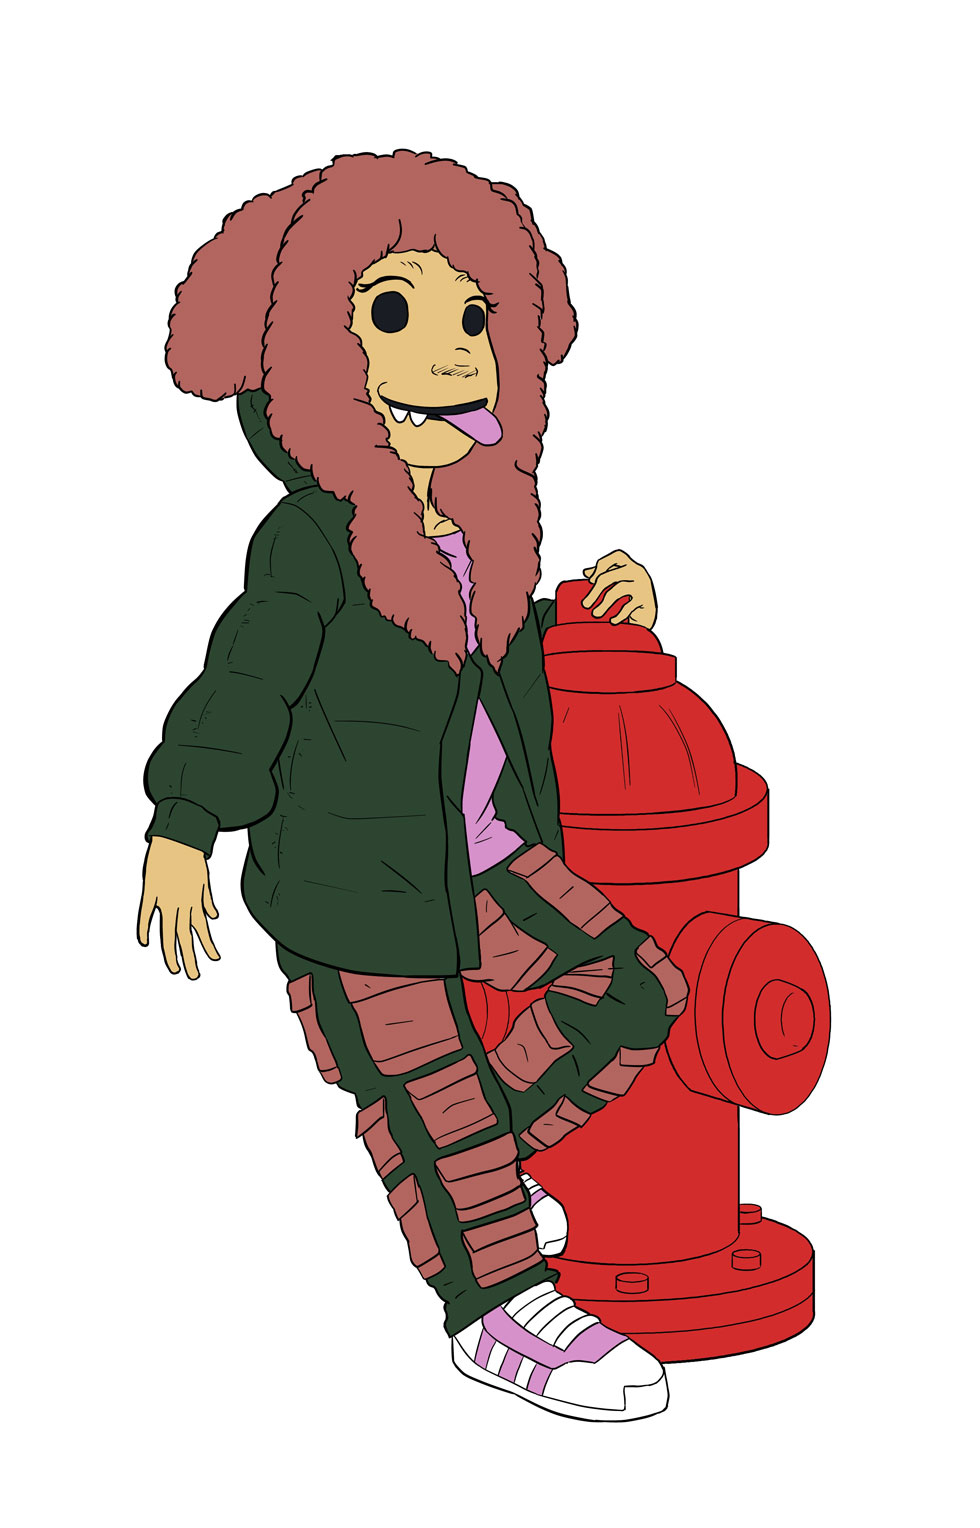 Luna and Fire Hydrant